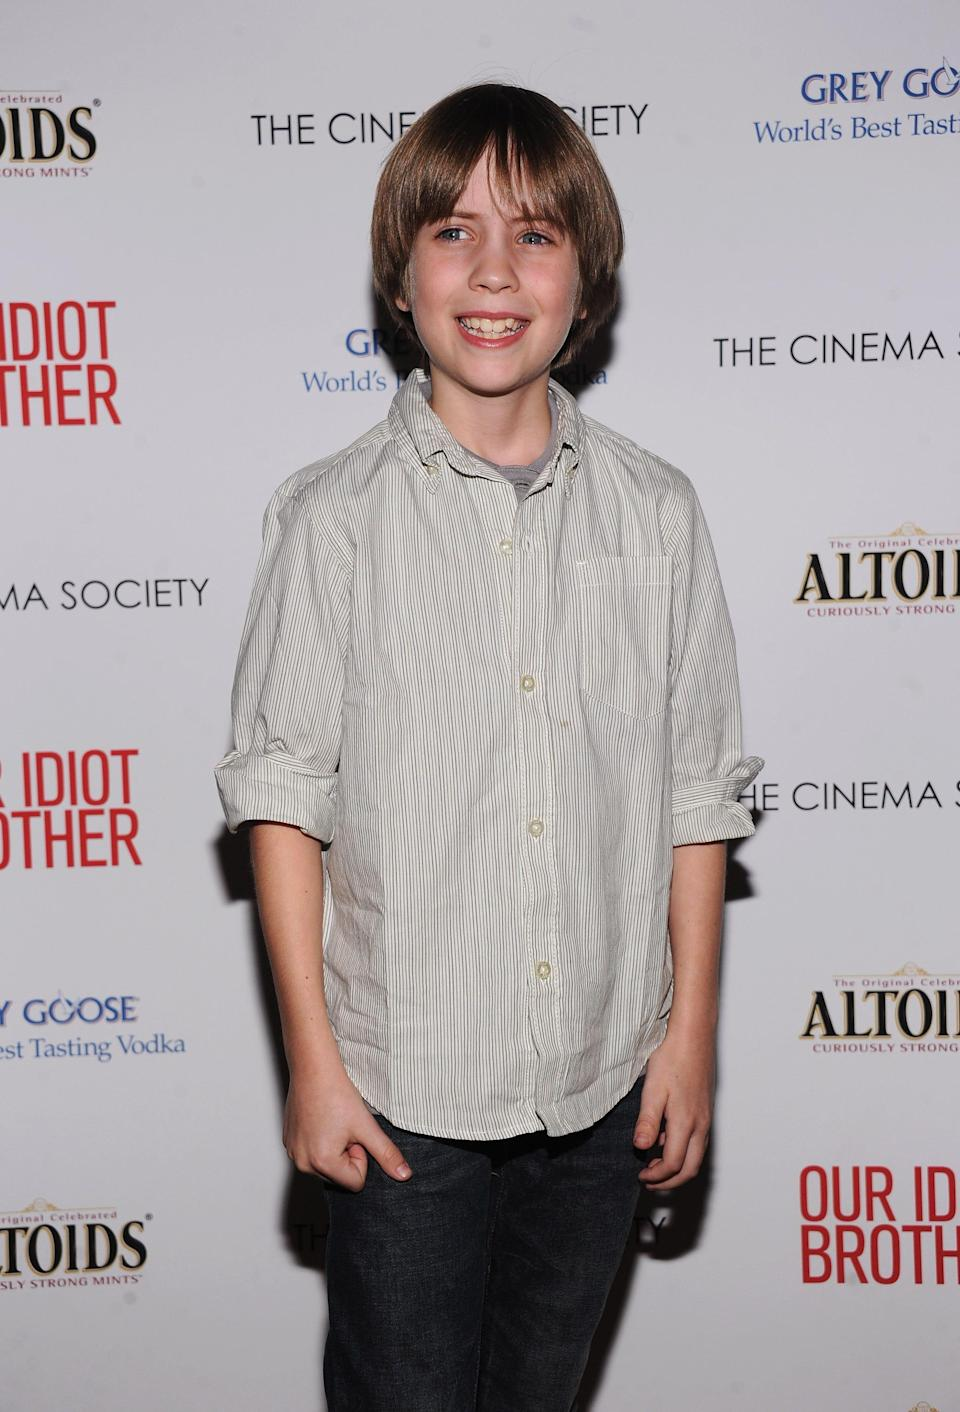 """Matthew Mindler, who starred in """"Our Idiot Brother,"""" died in August. His death was ruled a suicide on Oct. 14."""